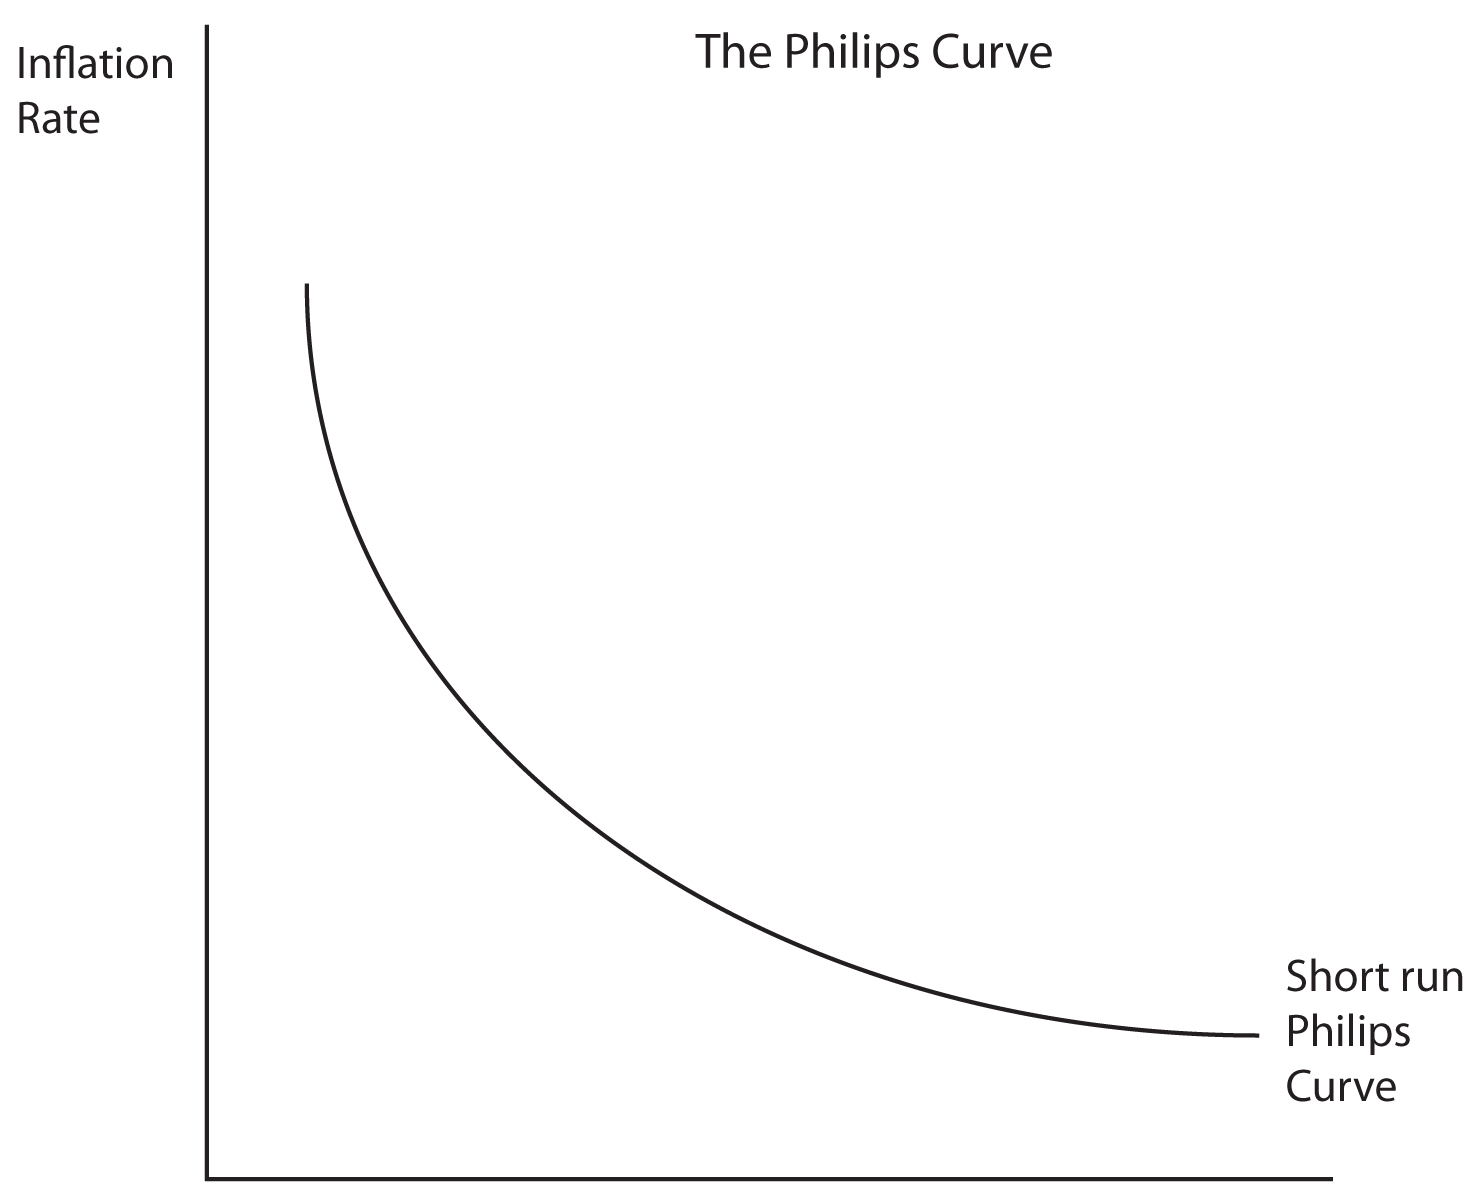 the phillips curve depicts relationship between macbeth